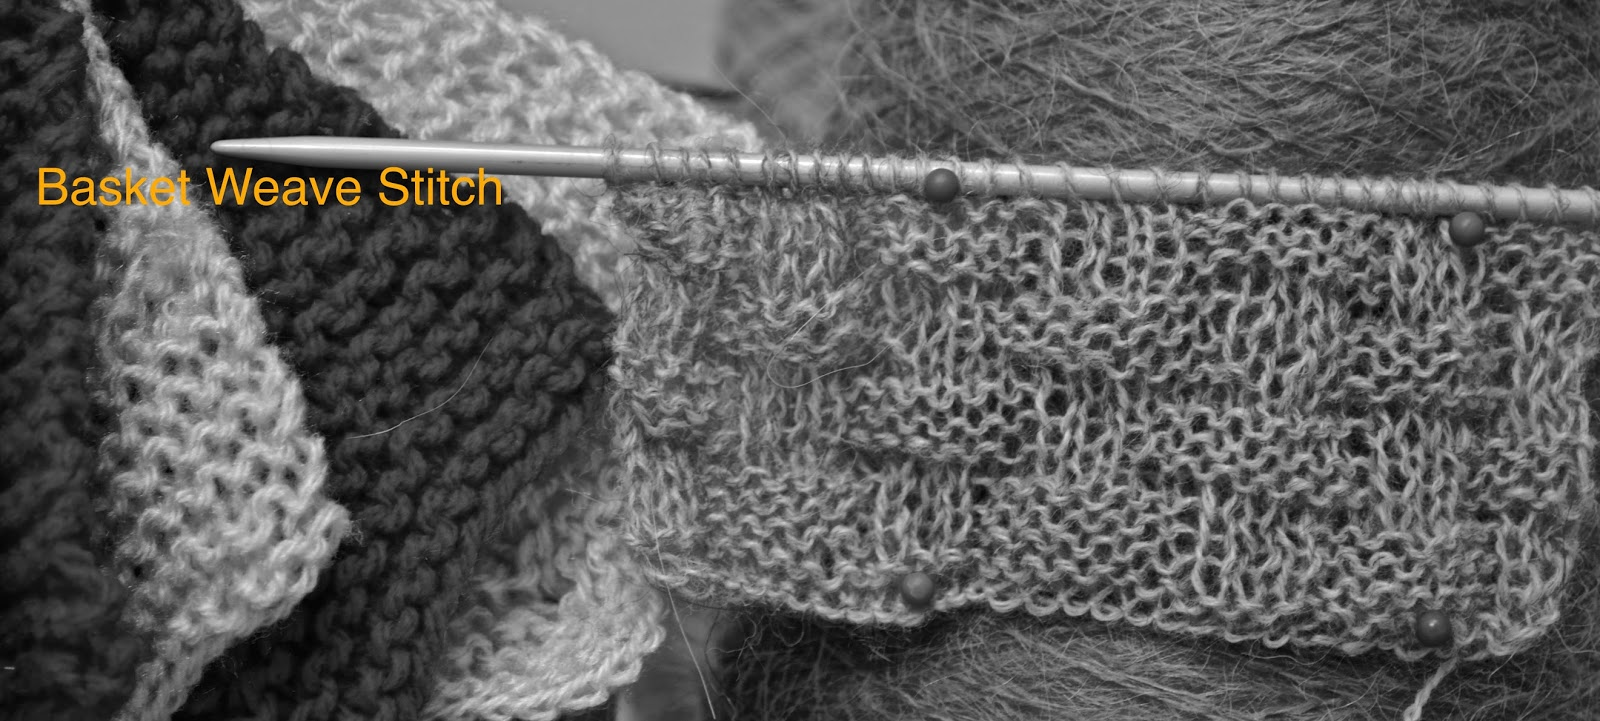 Knitting Stitches Weaving : Knitting Novice: The Weekly Swatch: The Basket Weave Stitch